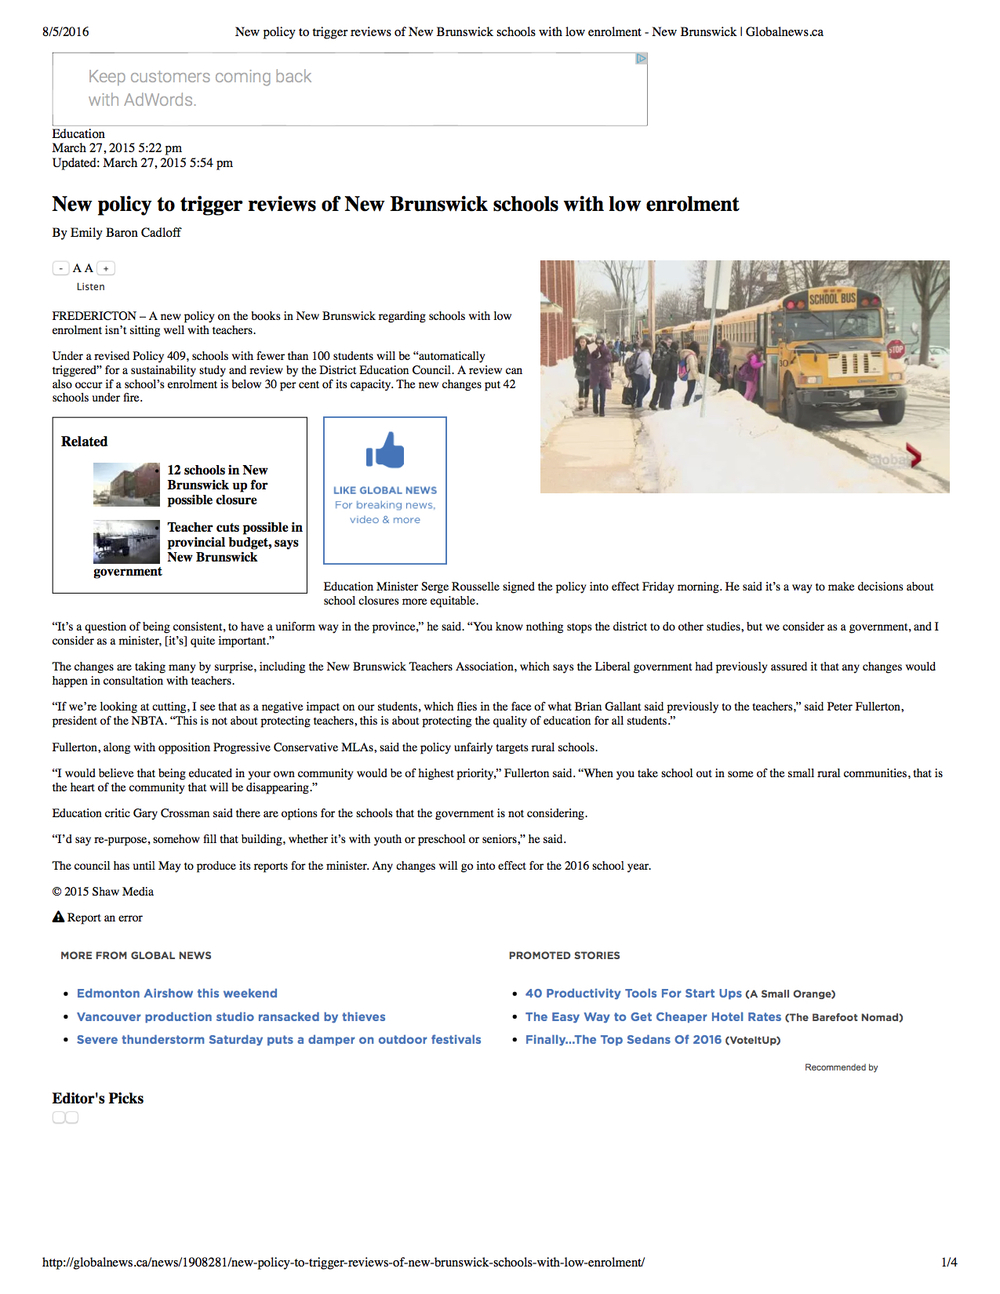 Web and broadcast feature on provincial school closures. Global New Brunswick, March 2015